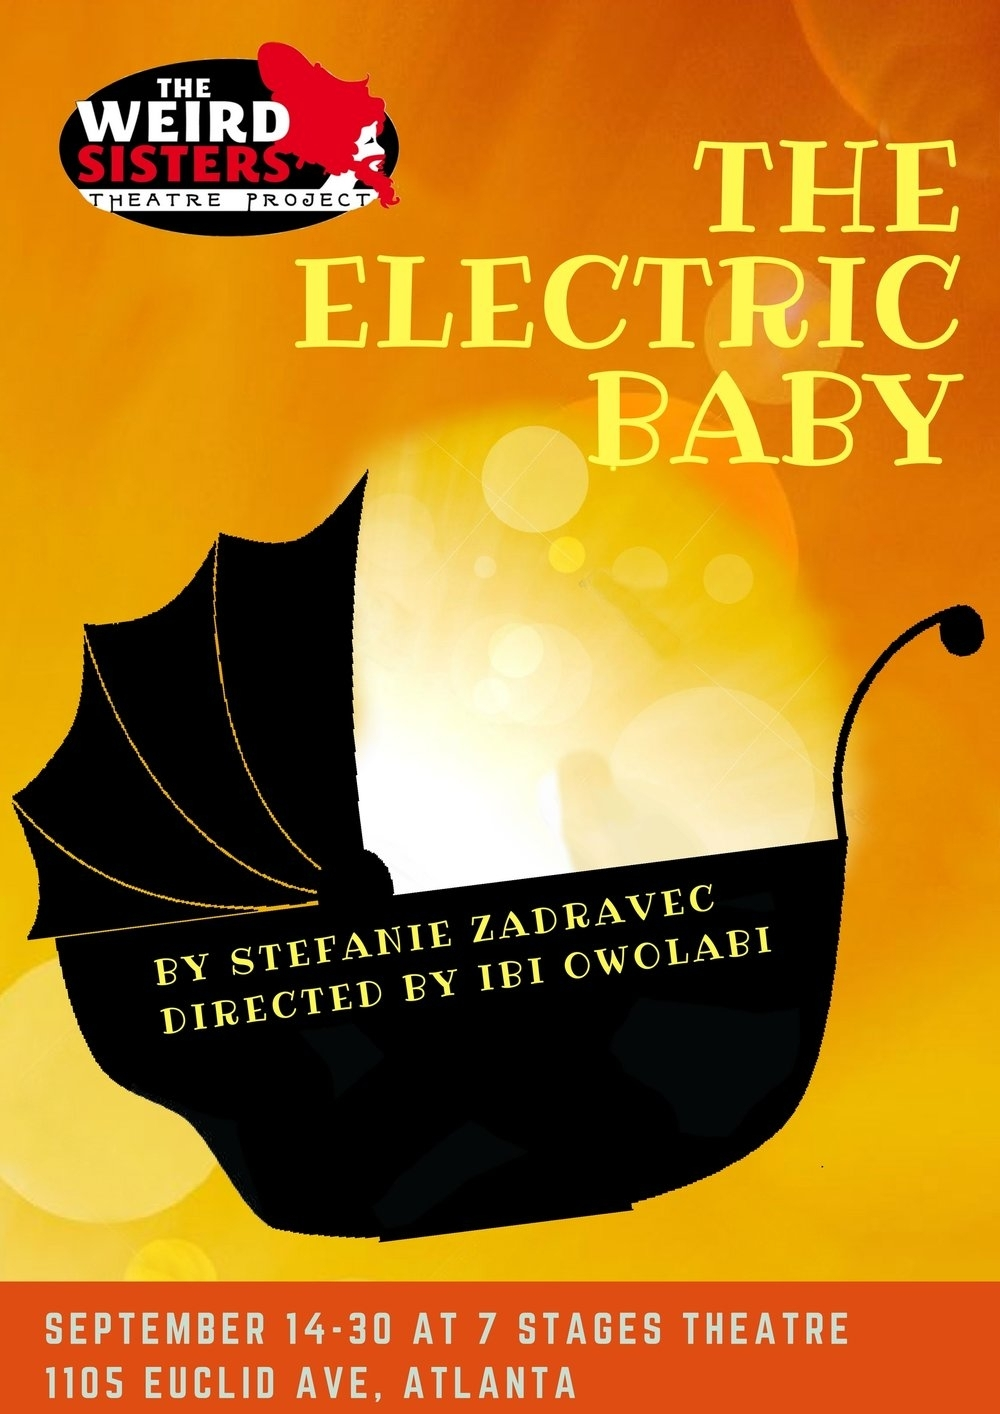 THE ELECTRIC BABY                              SEPT 14-30 2018.                                    Weird Sisters Theatre Project, Atlanta, GA